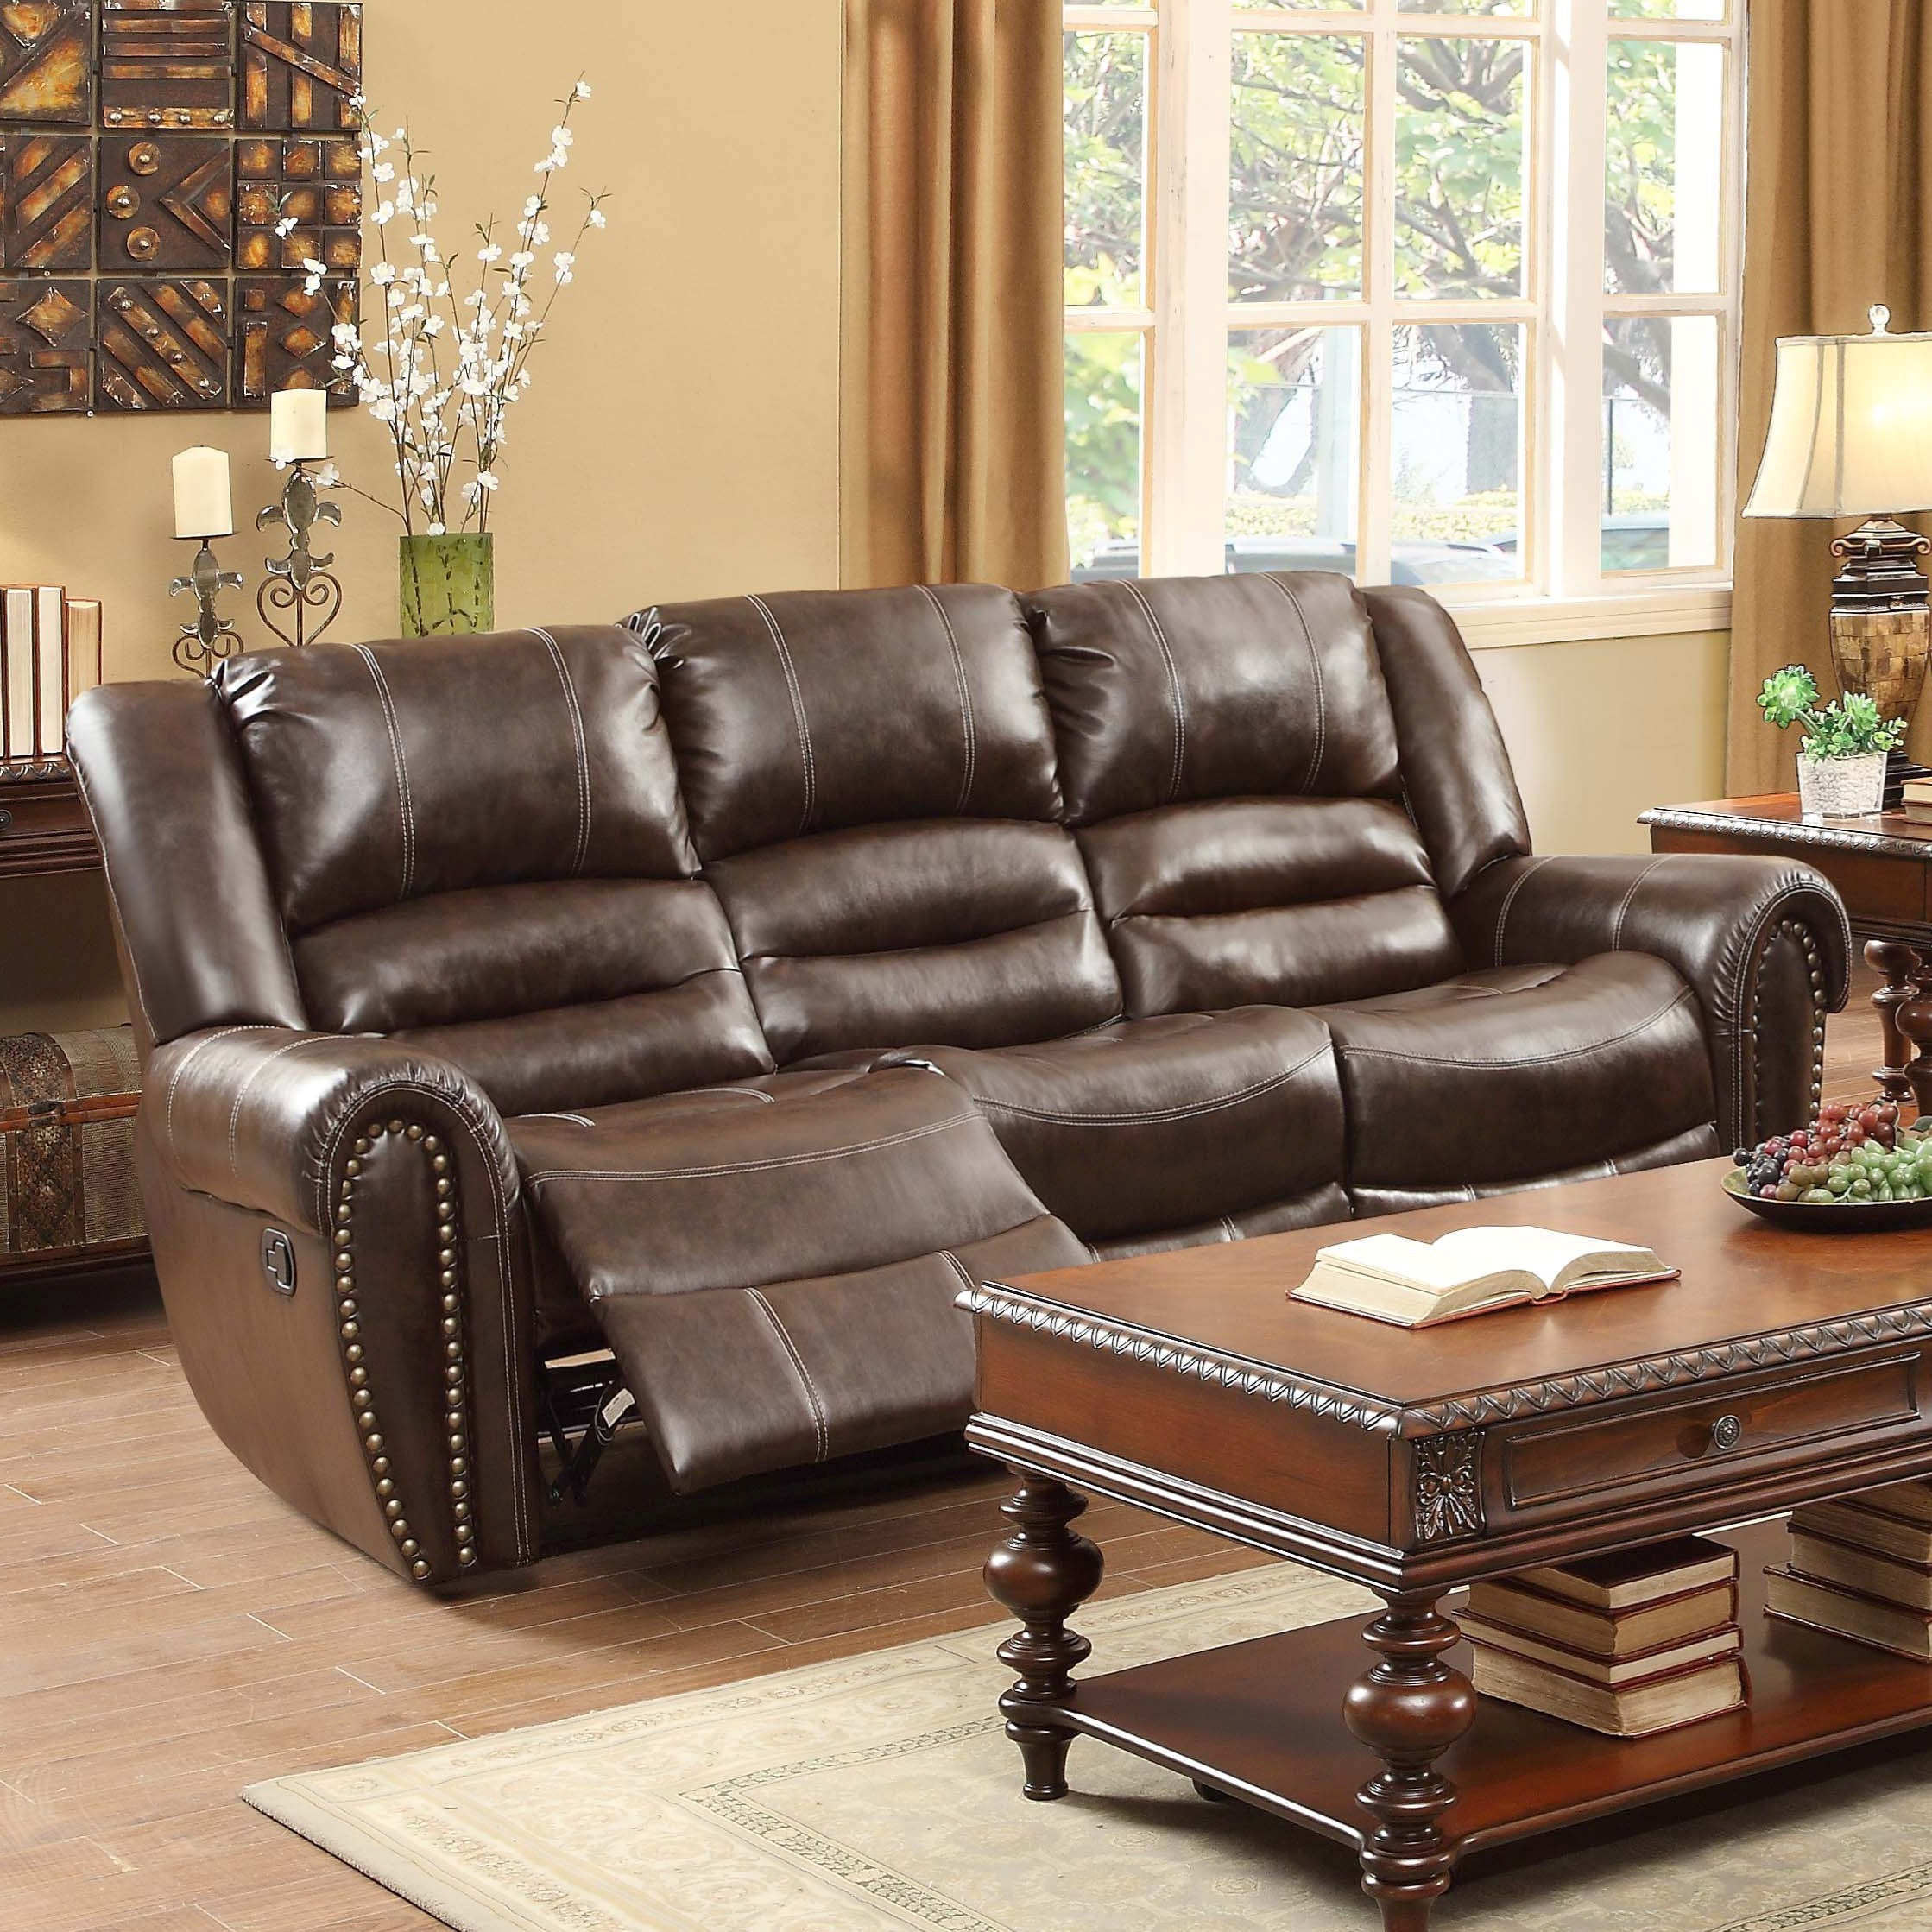 reclining sofa with nailhead trim custom size cushions delivery estimates northeast factory direct cleveland eastlake